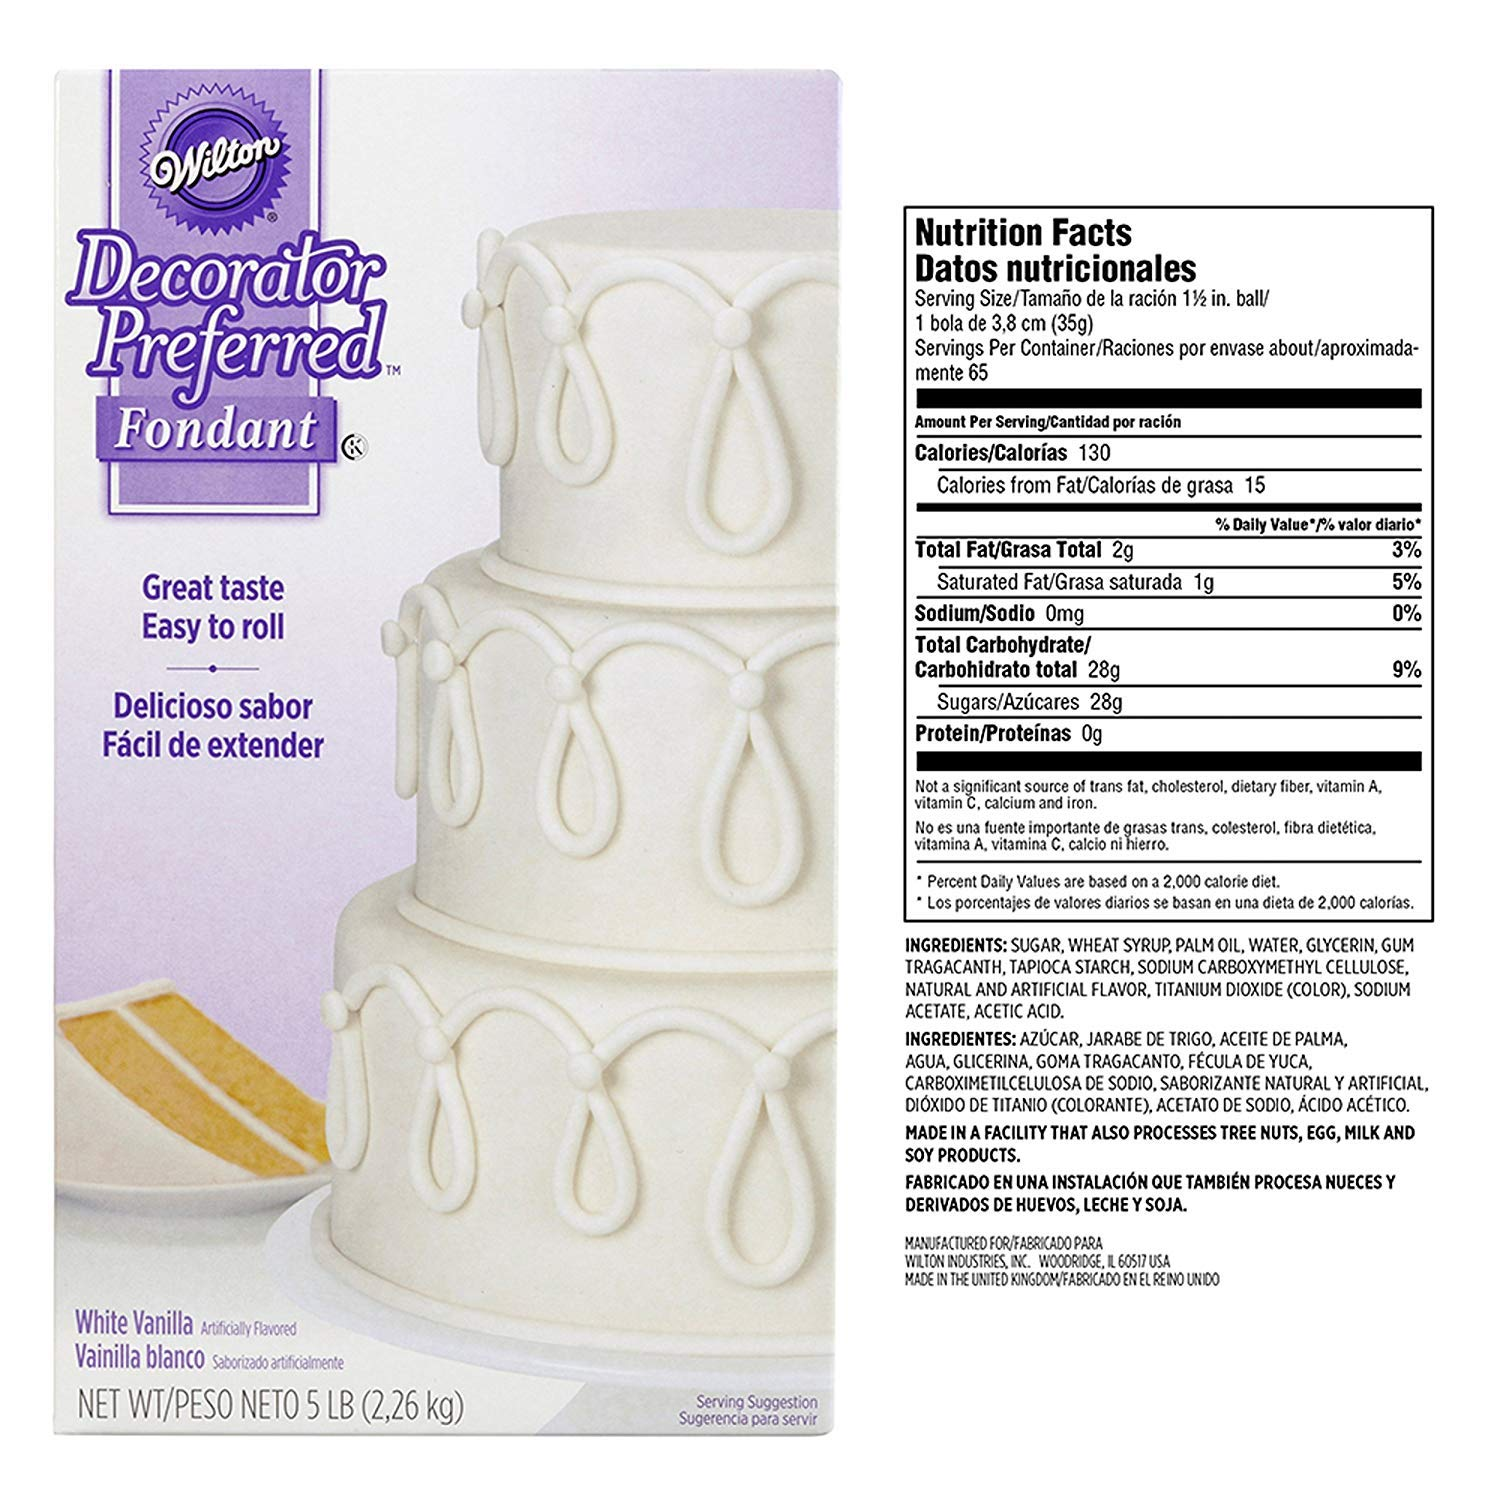 Wilton Decorator Preferred White Fondant, 5 lb 4Pack by Wilton (Image #2)